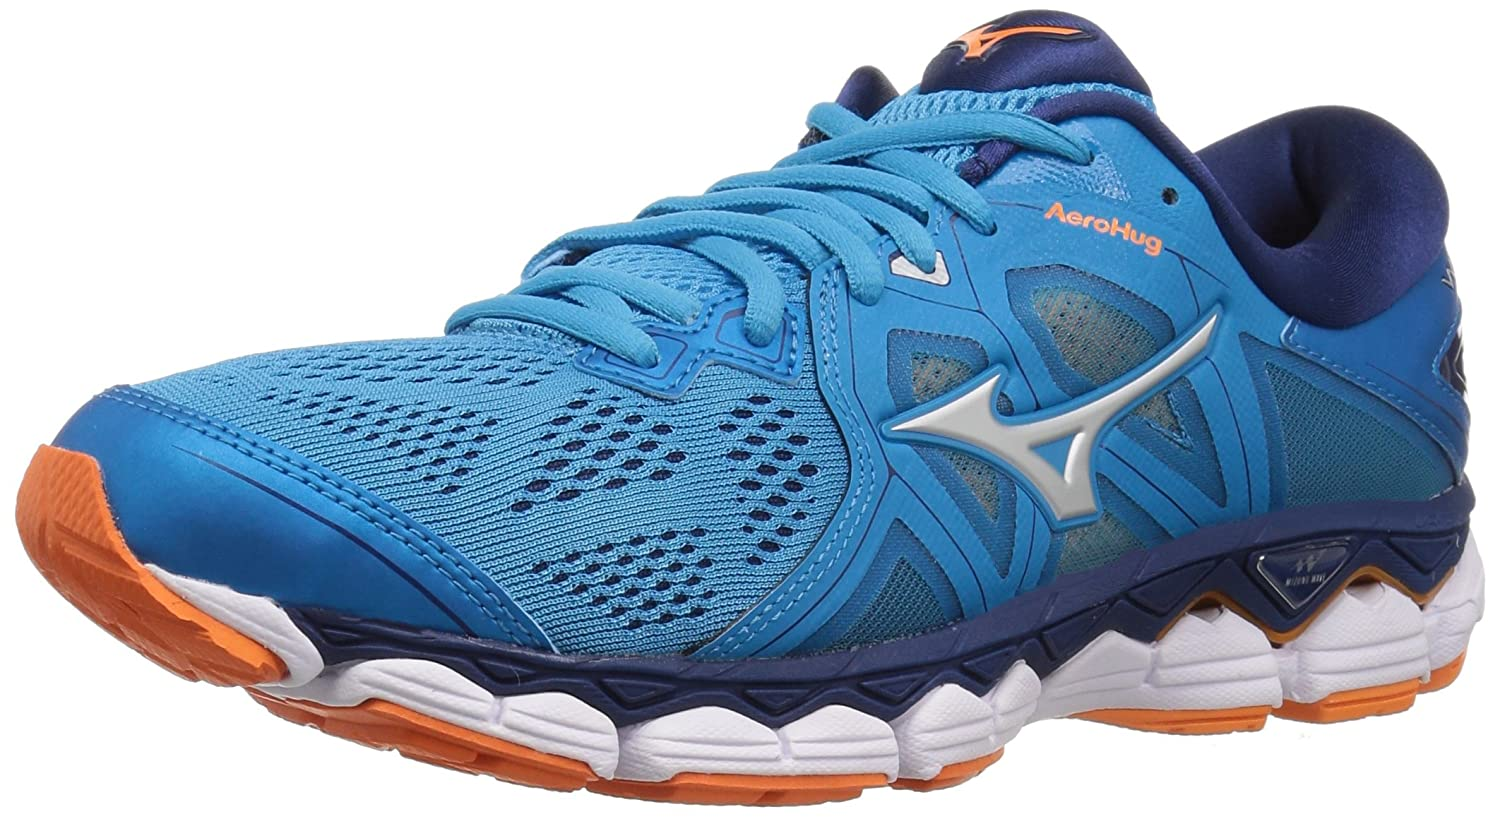 Mizuno Women's Wave Sky 2 Running Shoe B076YLBW1M 10 B(M) US|Hawaiian Ocearn/Birds of Paradise